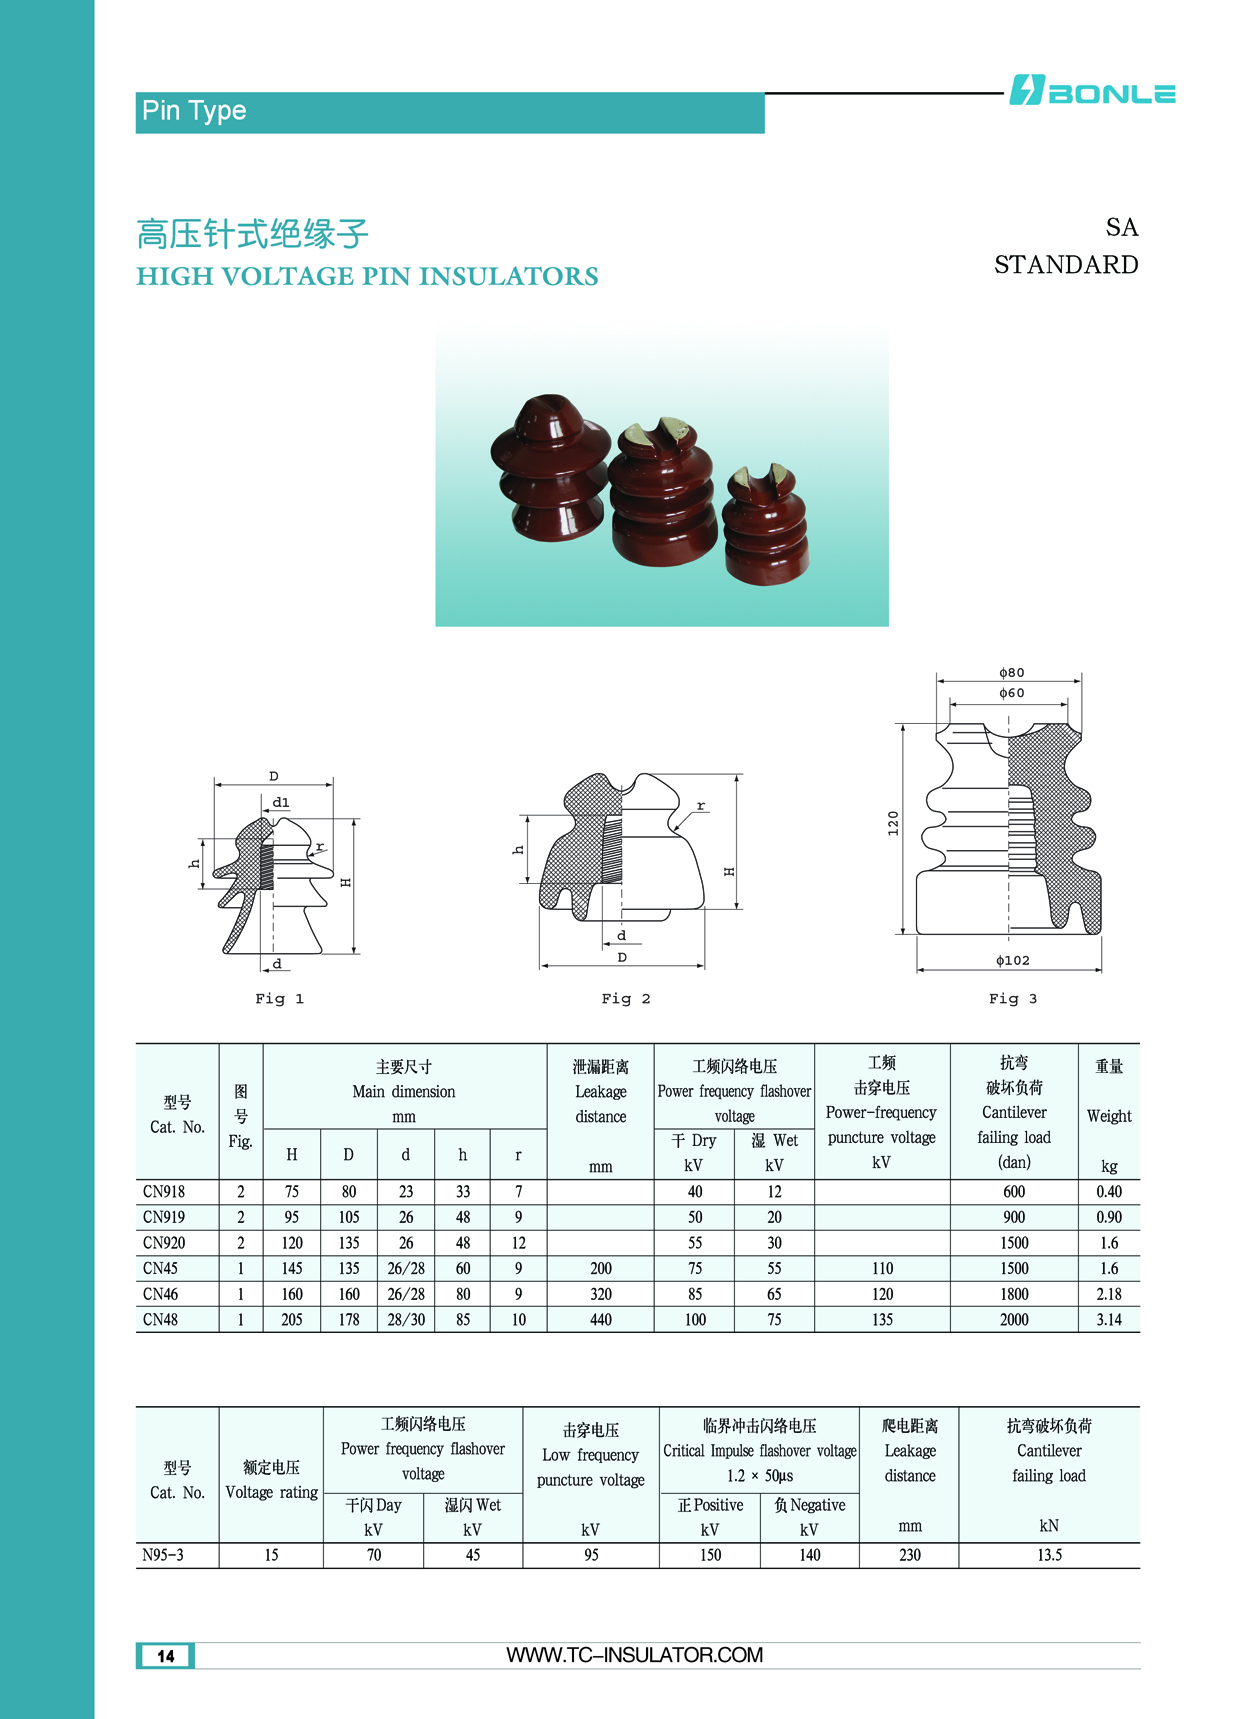 High Voltage Pin Insulators CN918, CN45, N95-3